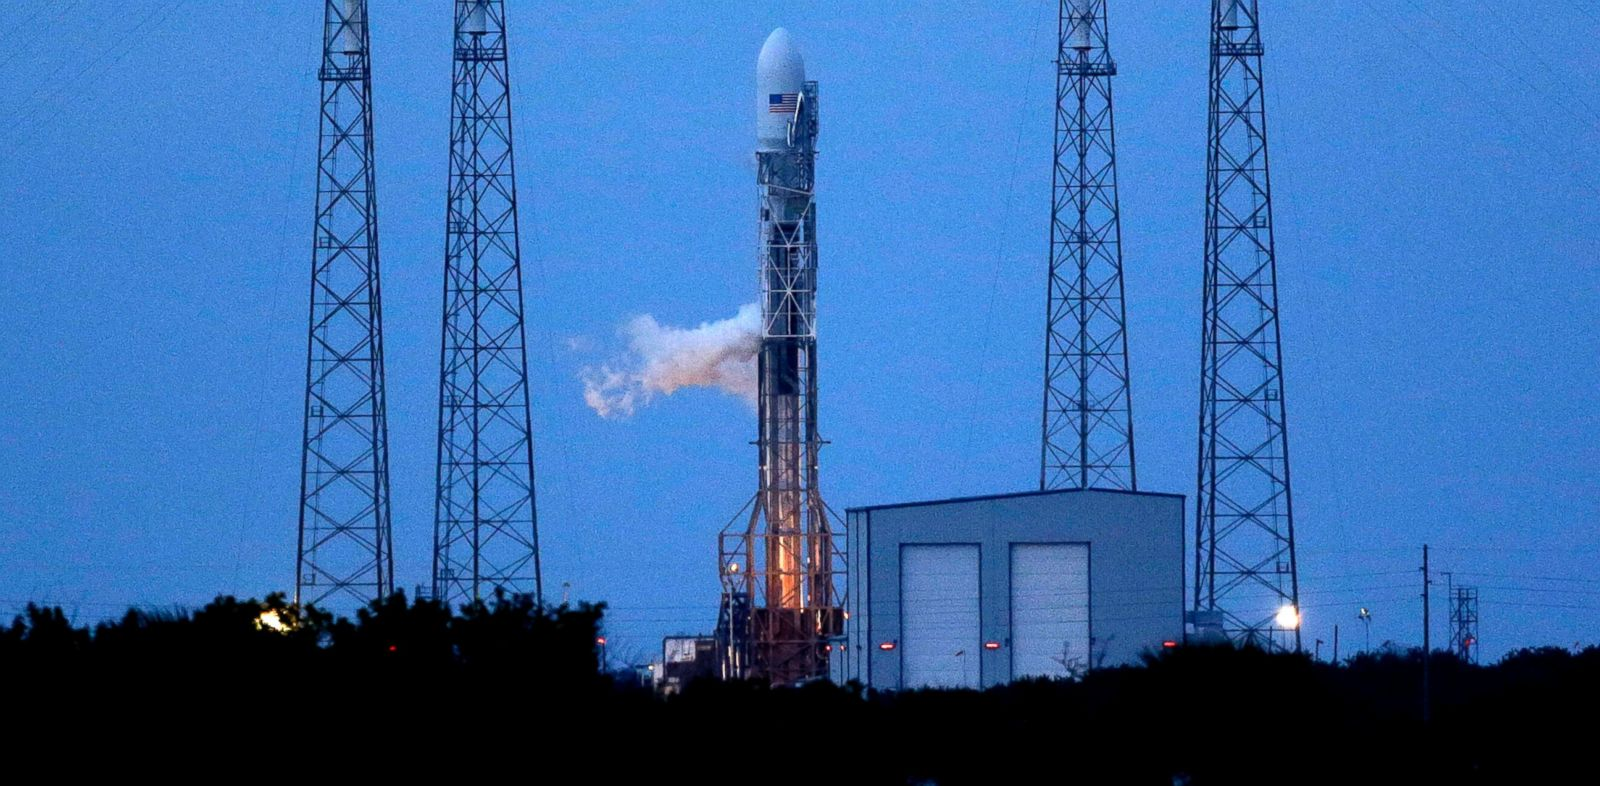 PHOTO: A Falcon 9 SpaceX rocket sits on Launch Complex 40 just before the launch window opened at the Cape Canaveral Air Force Station in Cape Canaveral, Fla. on Nov. 25, 2013. The launch was later rescheduled.